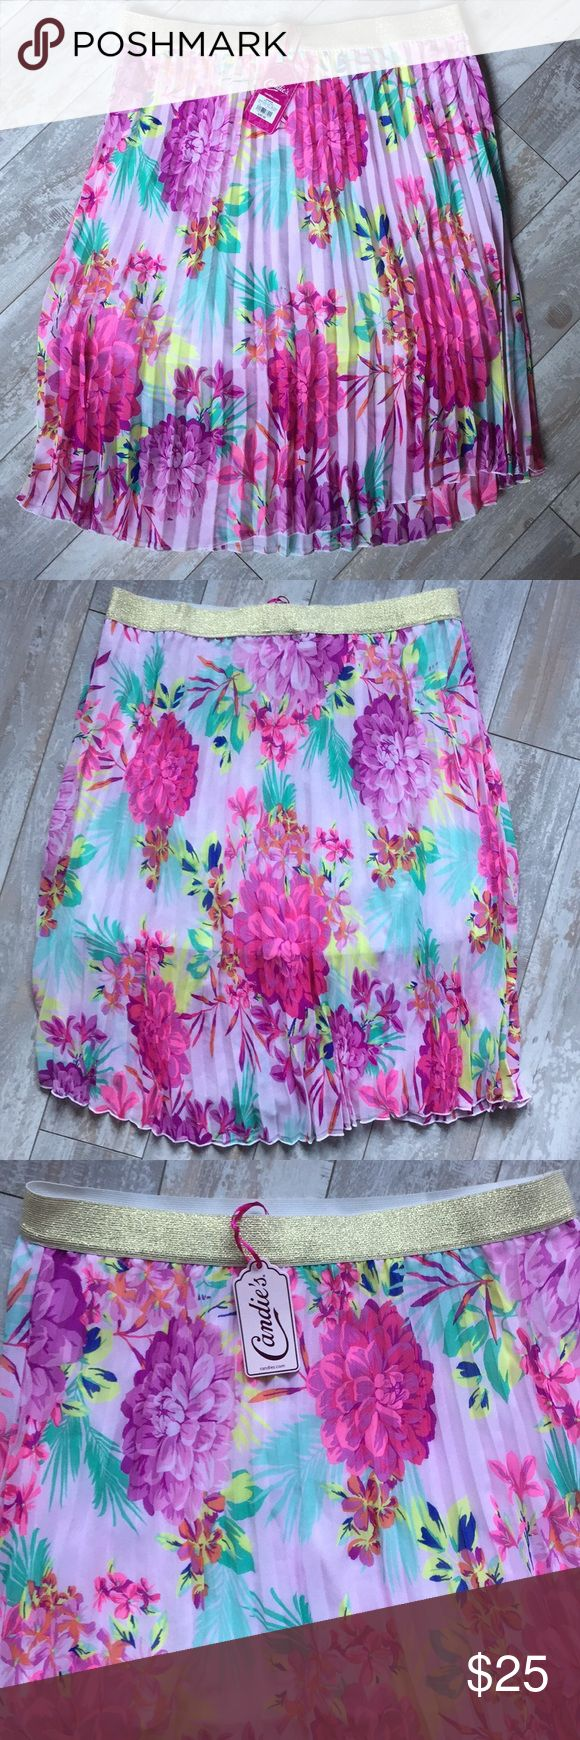 """Candie's Skirt Candie's Skirt. Candie's pink, magenta & green flower print, pleated, lined, 100% polyester, 24"""" in length with gold elastic 1.5"""" waist band skirt. 100% polyester. Washable. Candie's Skirts"""